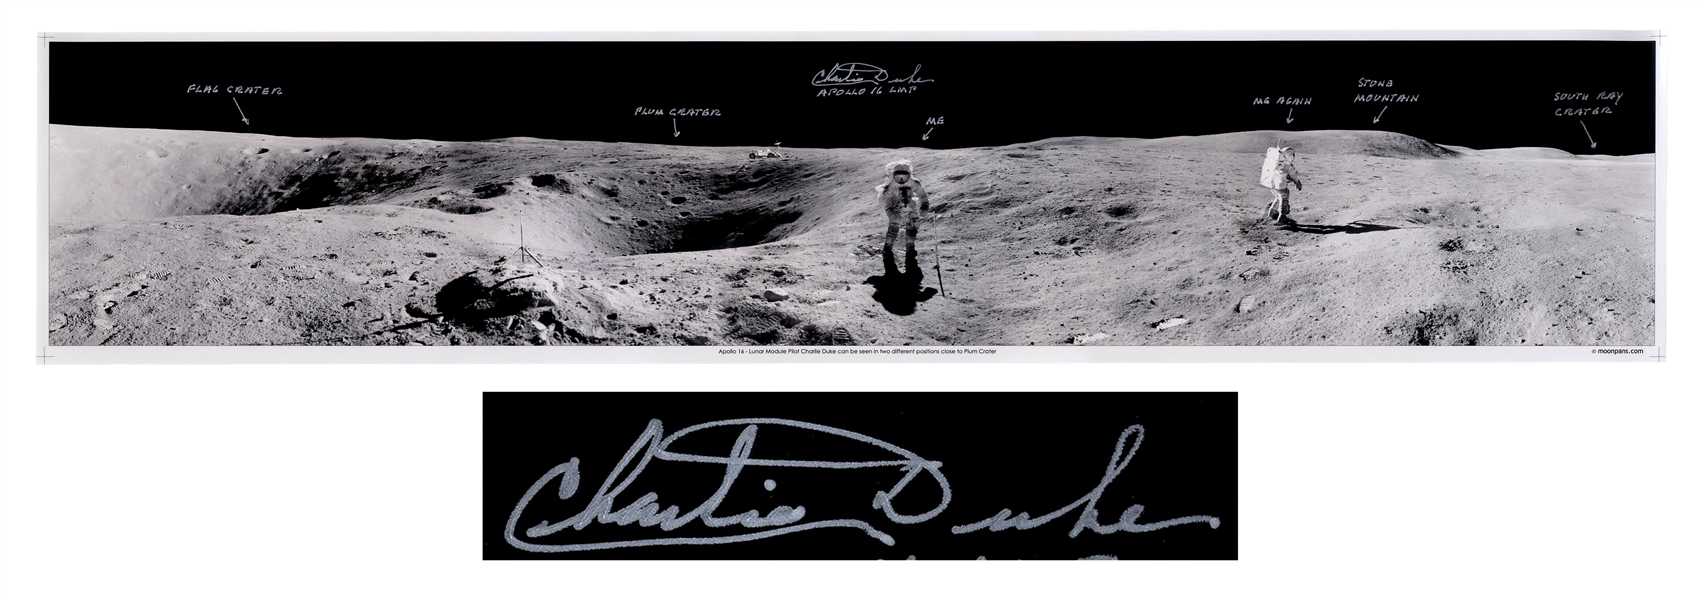 Charlie Duke Signed 40'' Panoramic Photo of the Lunar Surface During the Apollo 16 Mission